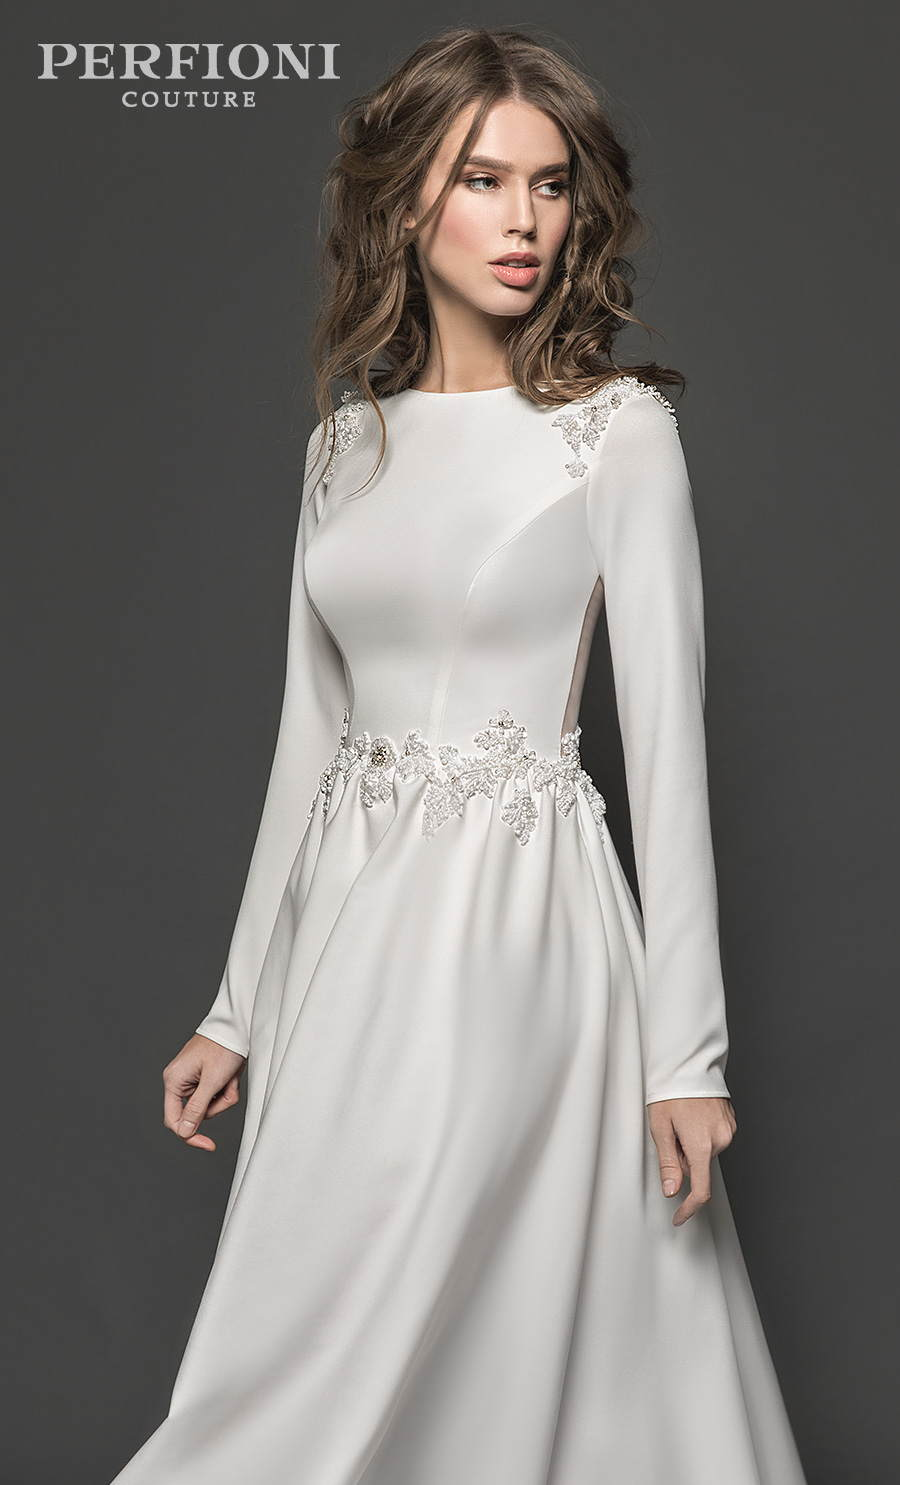 perfioni 2020 flora romance bridal long sleeves bateau neck simple minimalist princess elegant a line wedding dress sheer button back chapel train (brianna) mv zv